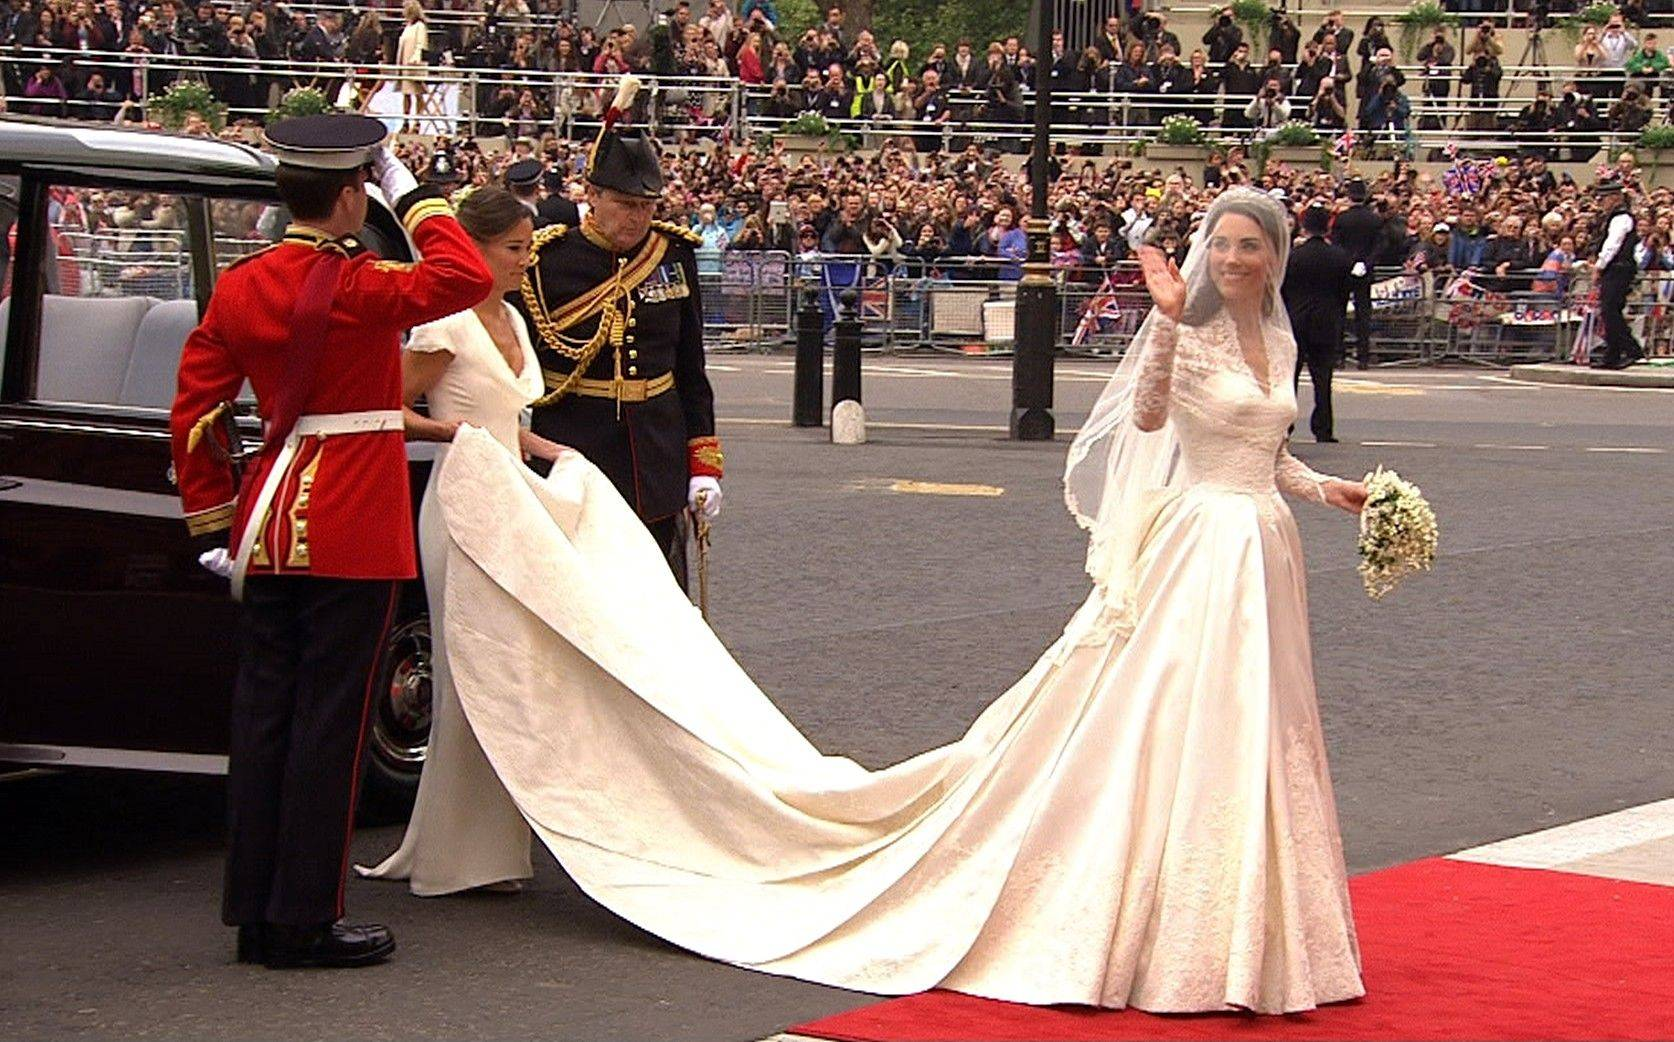 Kate Middleton waves as she arrives at Westminster Abbey for the Royal Wedding in London on Friday, April, 29, 2011.